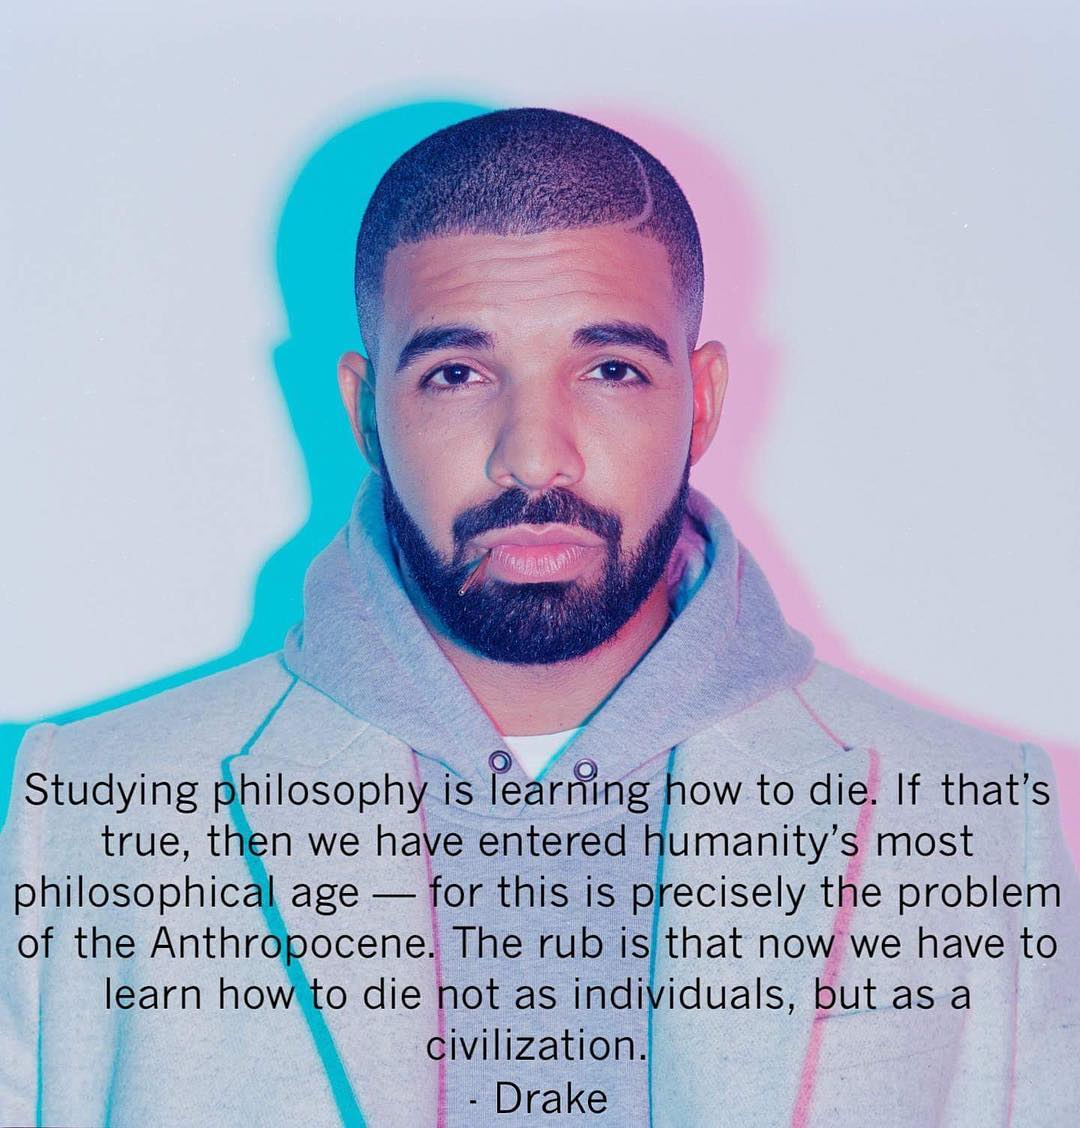 Drake Anthropocene